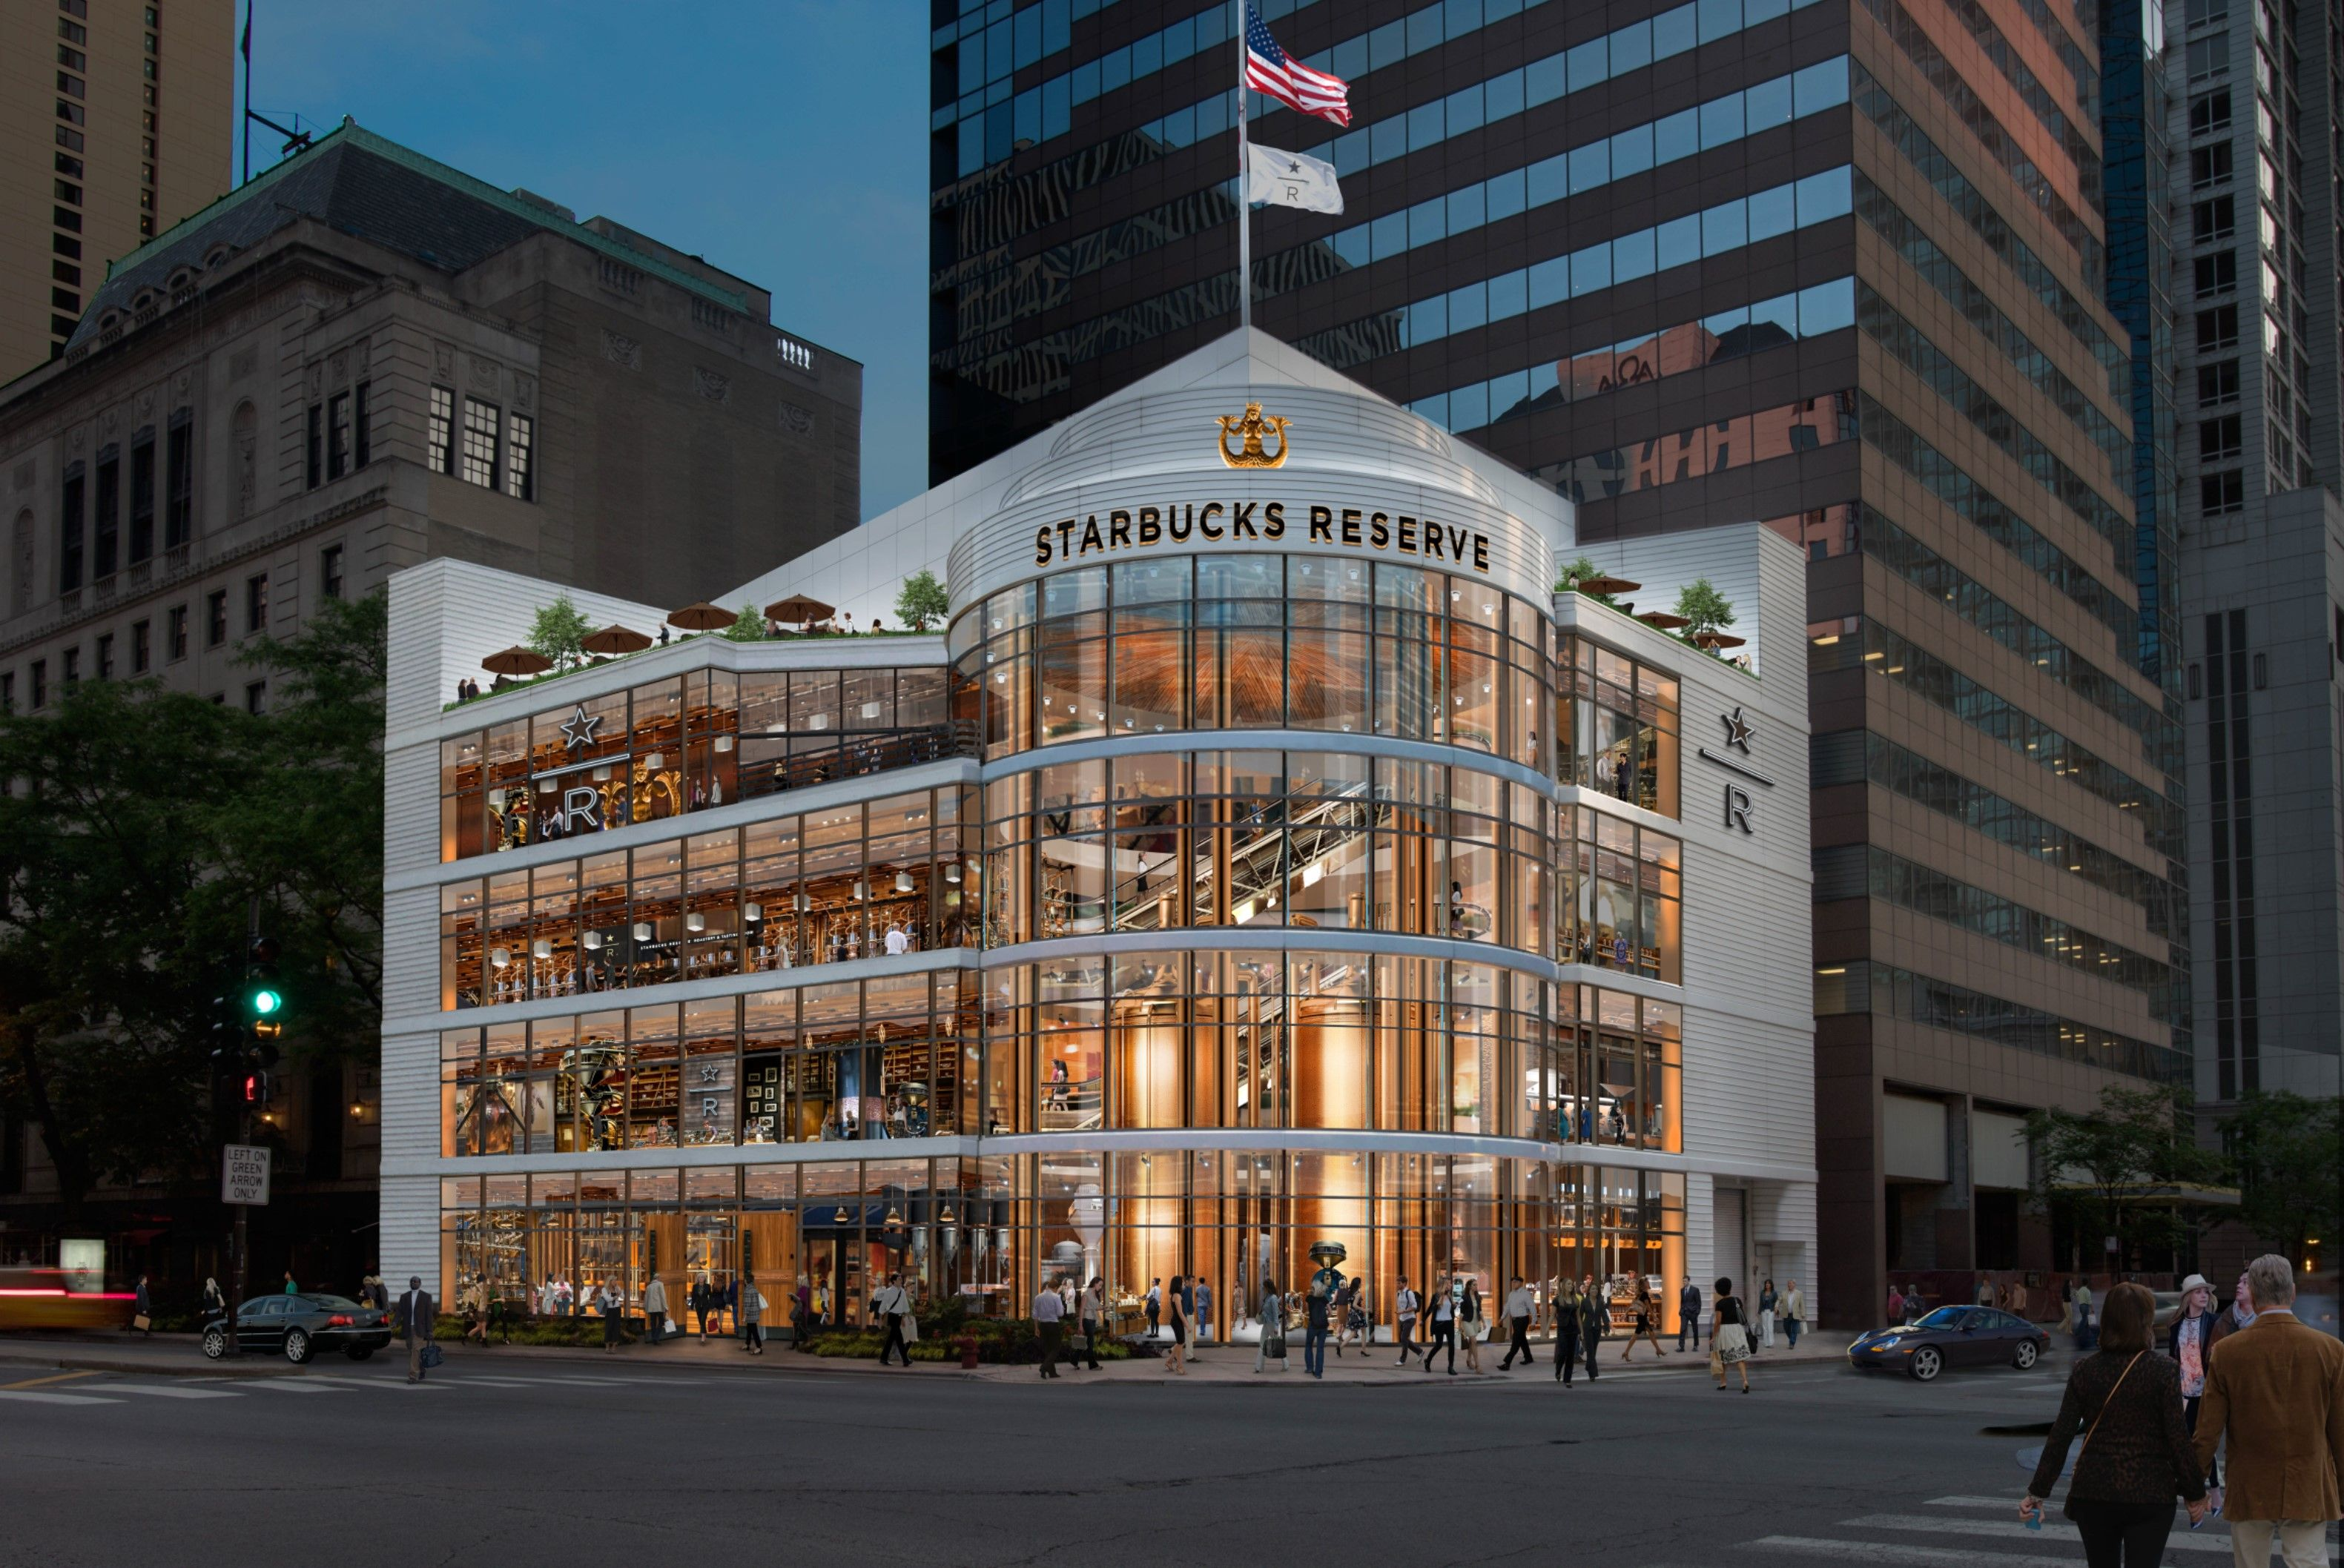 The World's Largest Starbucks Will Be Opening in Chicago